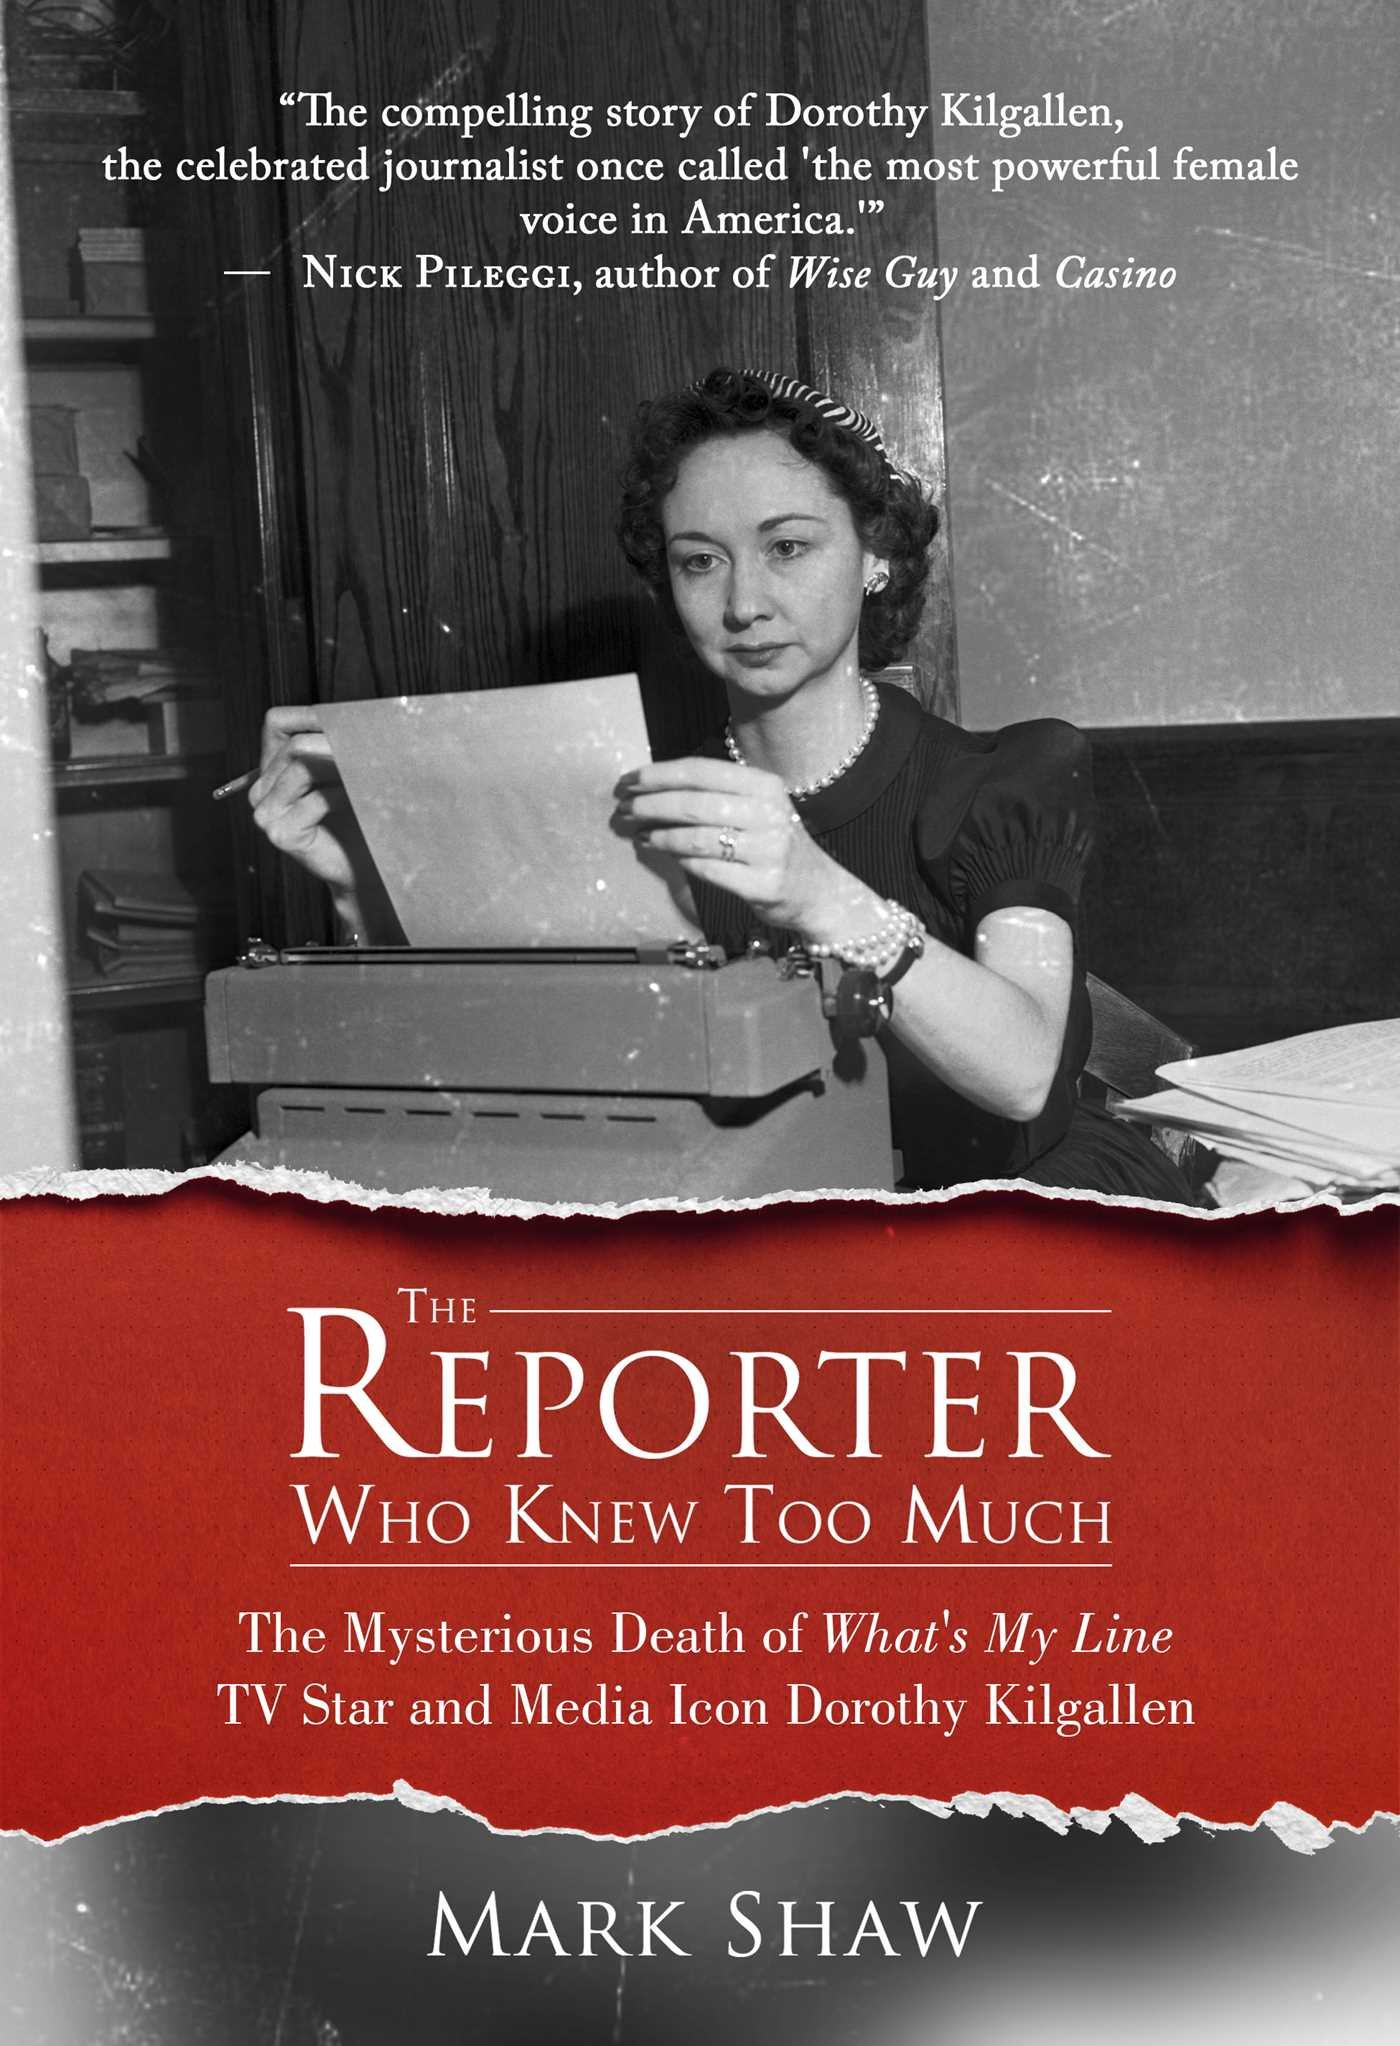 738a6a296 The Reporter Who Knew Too Much: The Mysterious Death of What's My Line TV  Star and Media Icon Dorothy Kilgallen: Mark Shaw: 9781682610978:  Amazon.com: Books